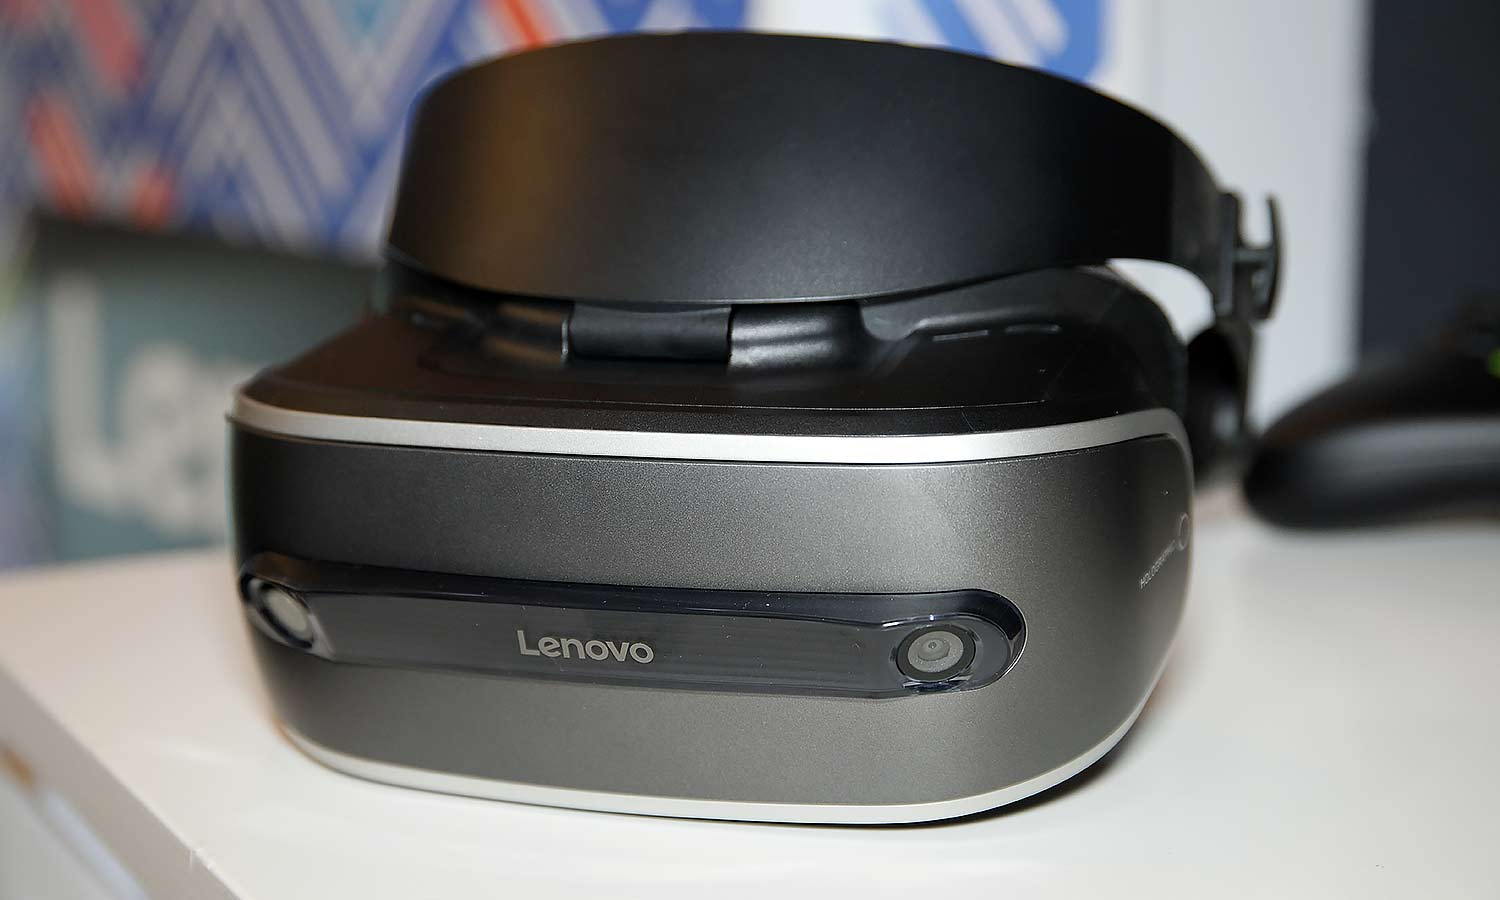 Lenovo's Affordable VR Headset Keeps Businesses in Mind